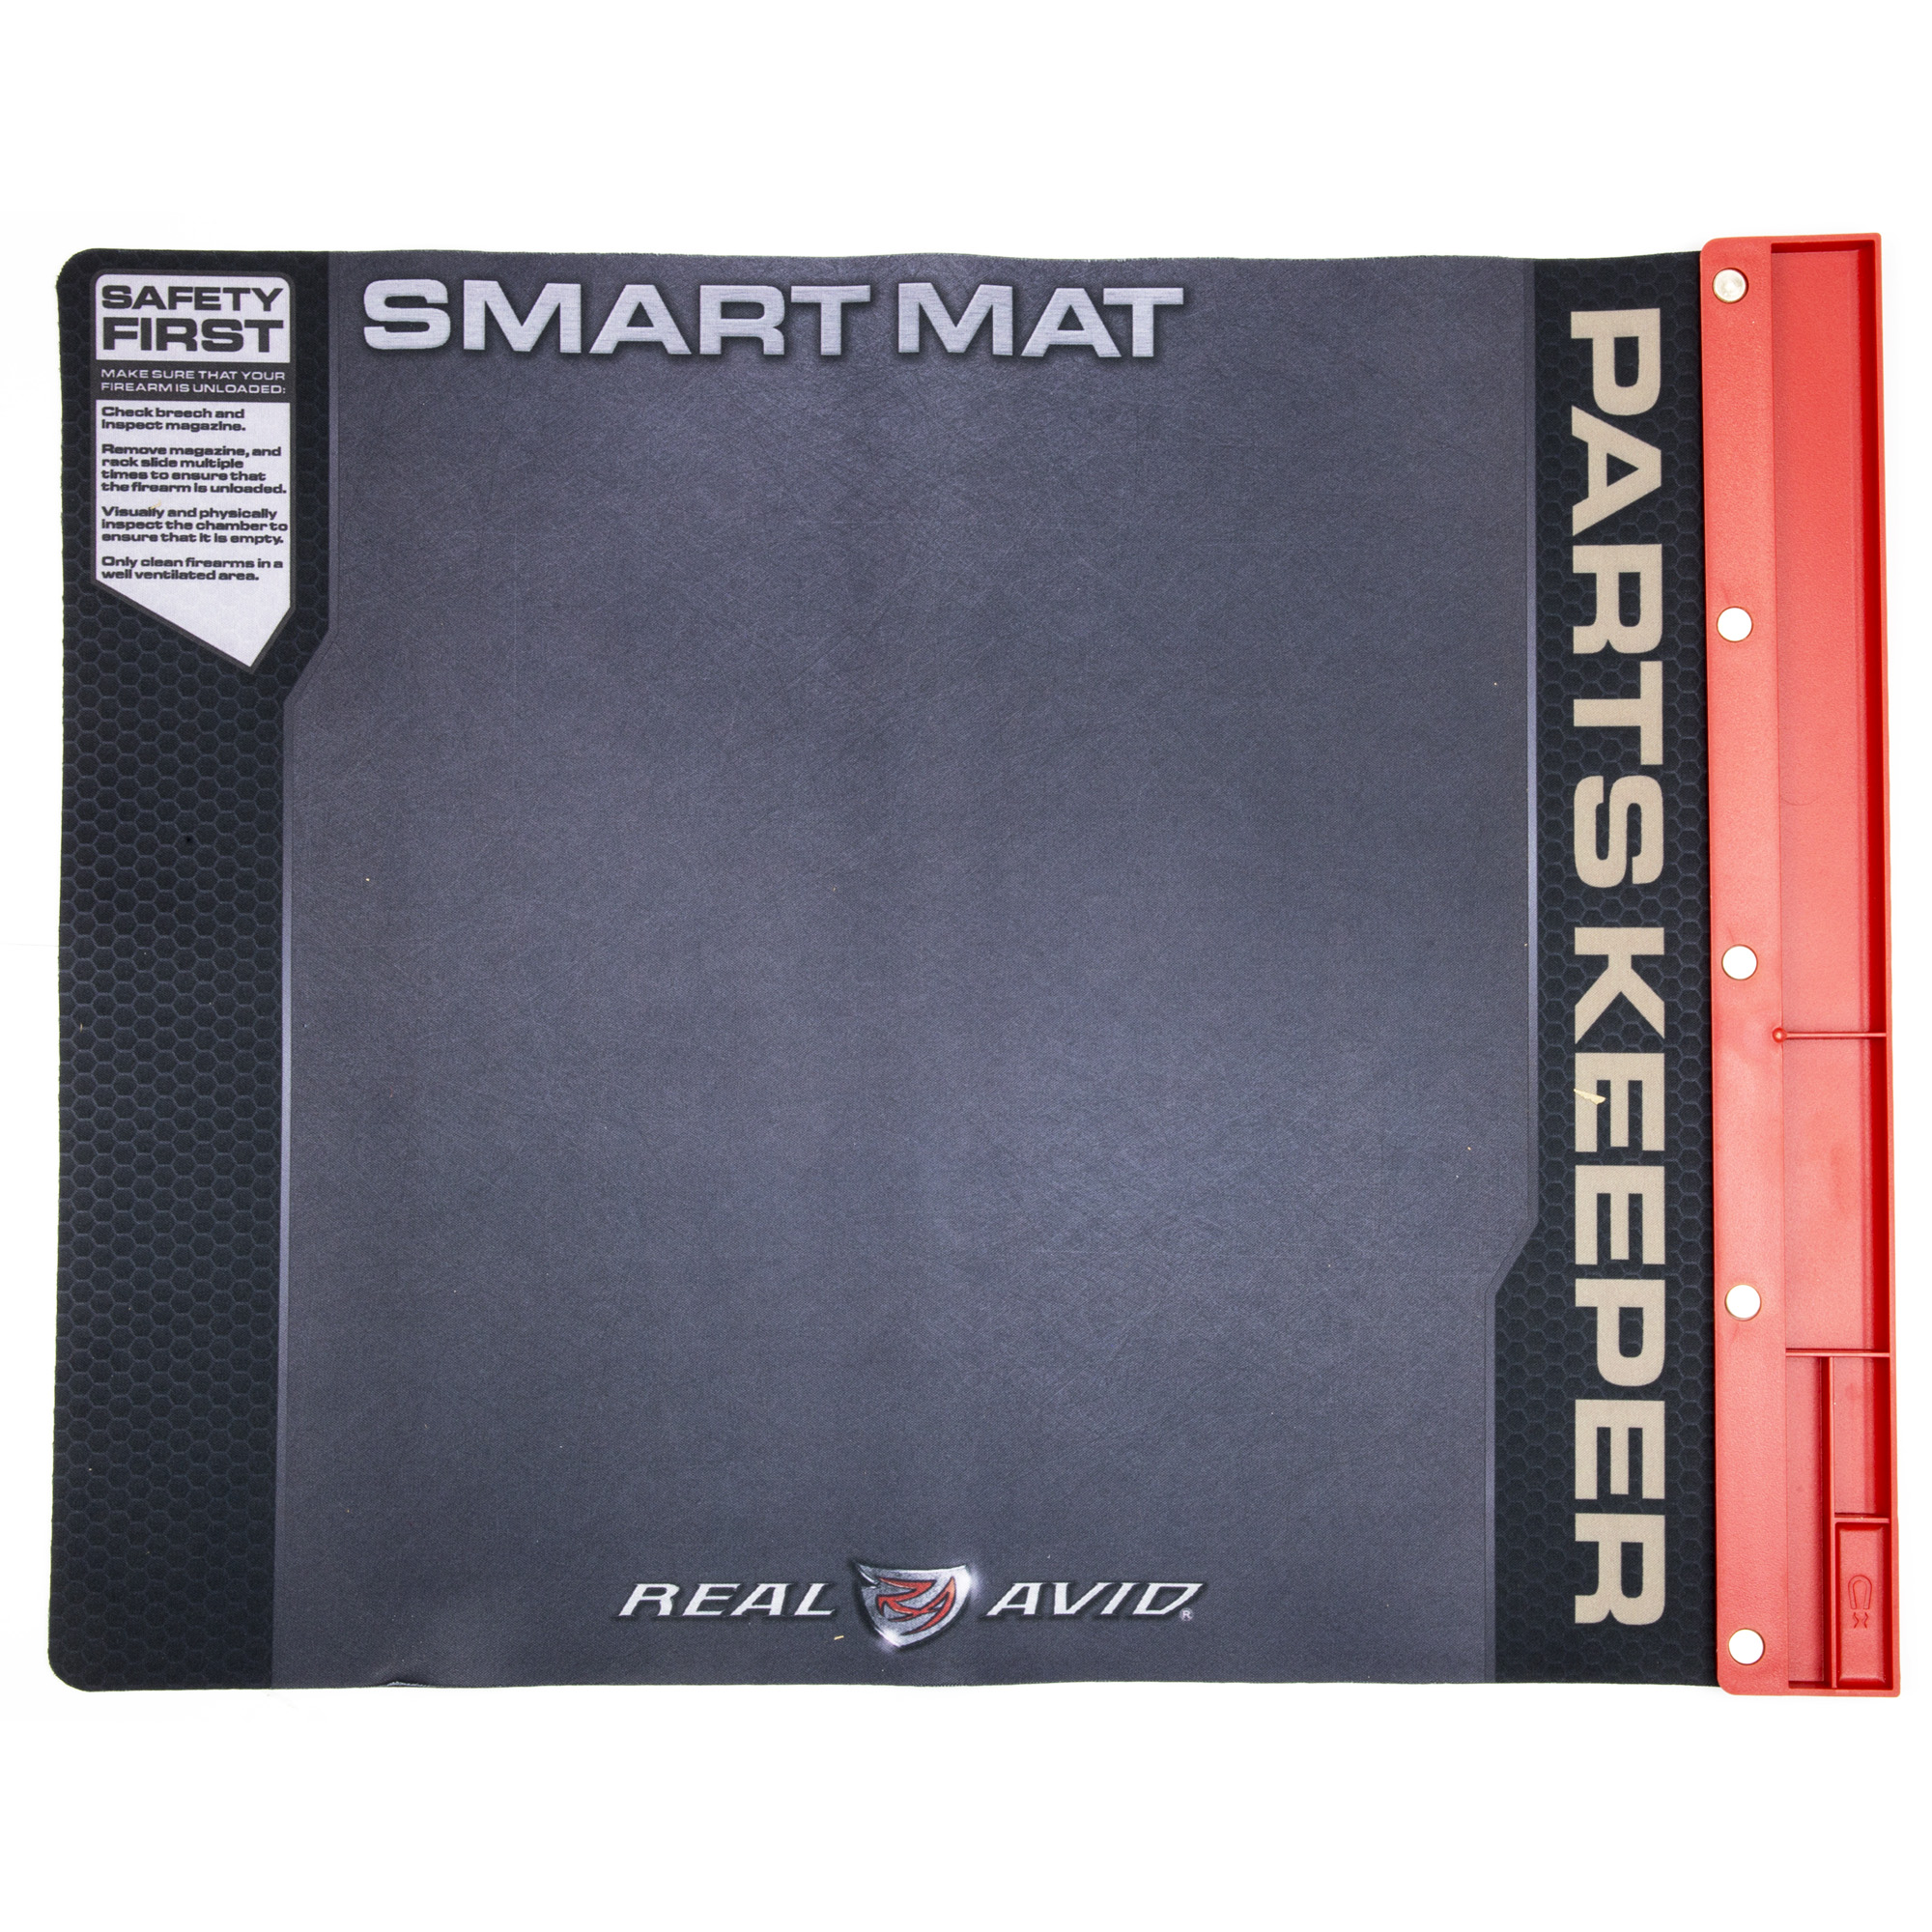 "Get rid of your felt pad and greasy beach towels and treat your handguns with the respect they deserve. The Handgun Smart Mat was designed to be the ultimate cleaning mat for all your handguns. This 19"" x 16"" padded mat is large enough to handle your disassembled guns and includes an attached parts tray to hold your pins"" barrel"" and springs so they are always safely within reach. The oil-resistant surface allows you to clean your gun without ruining the kitchen table."